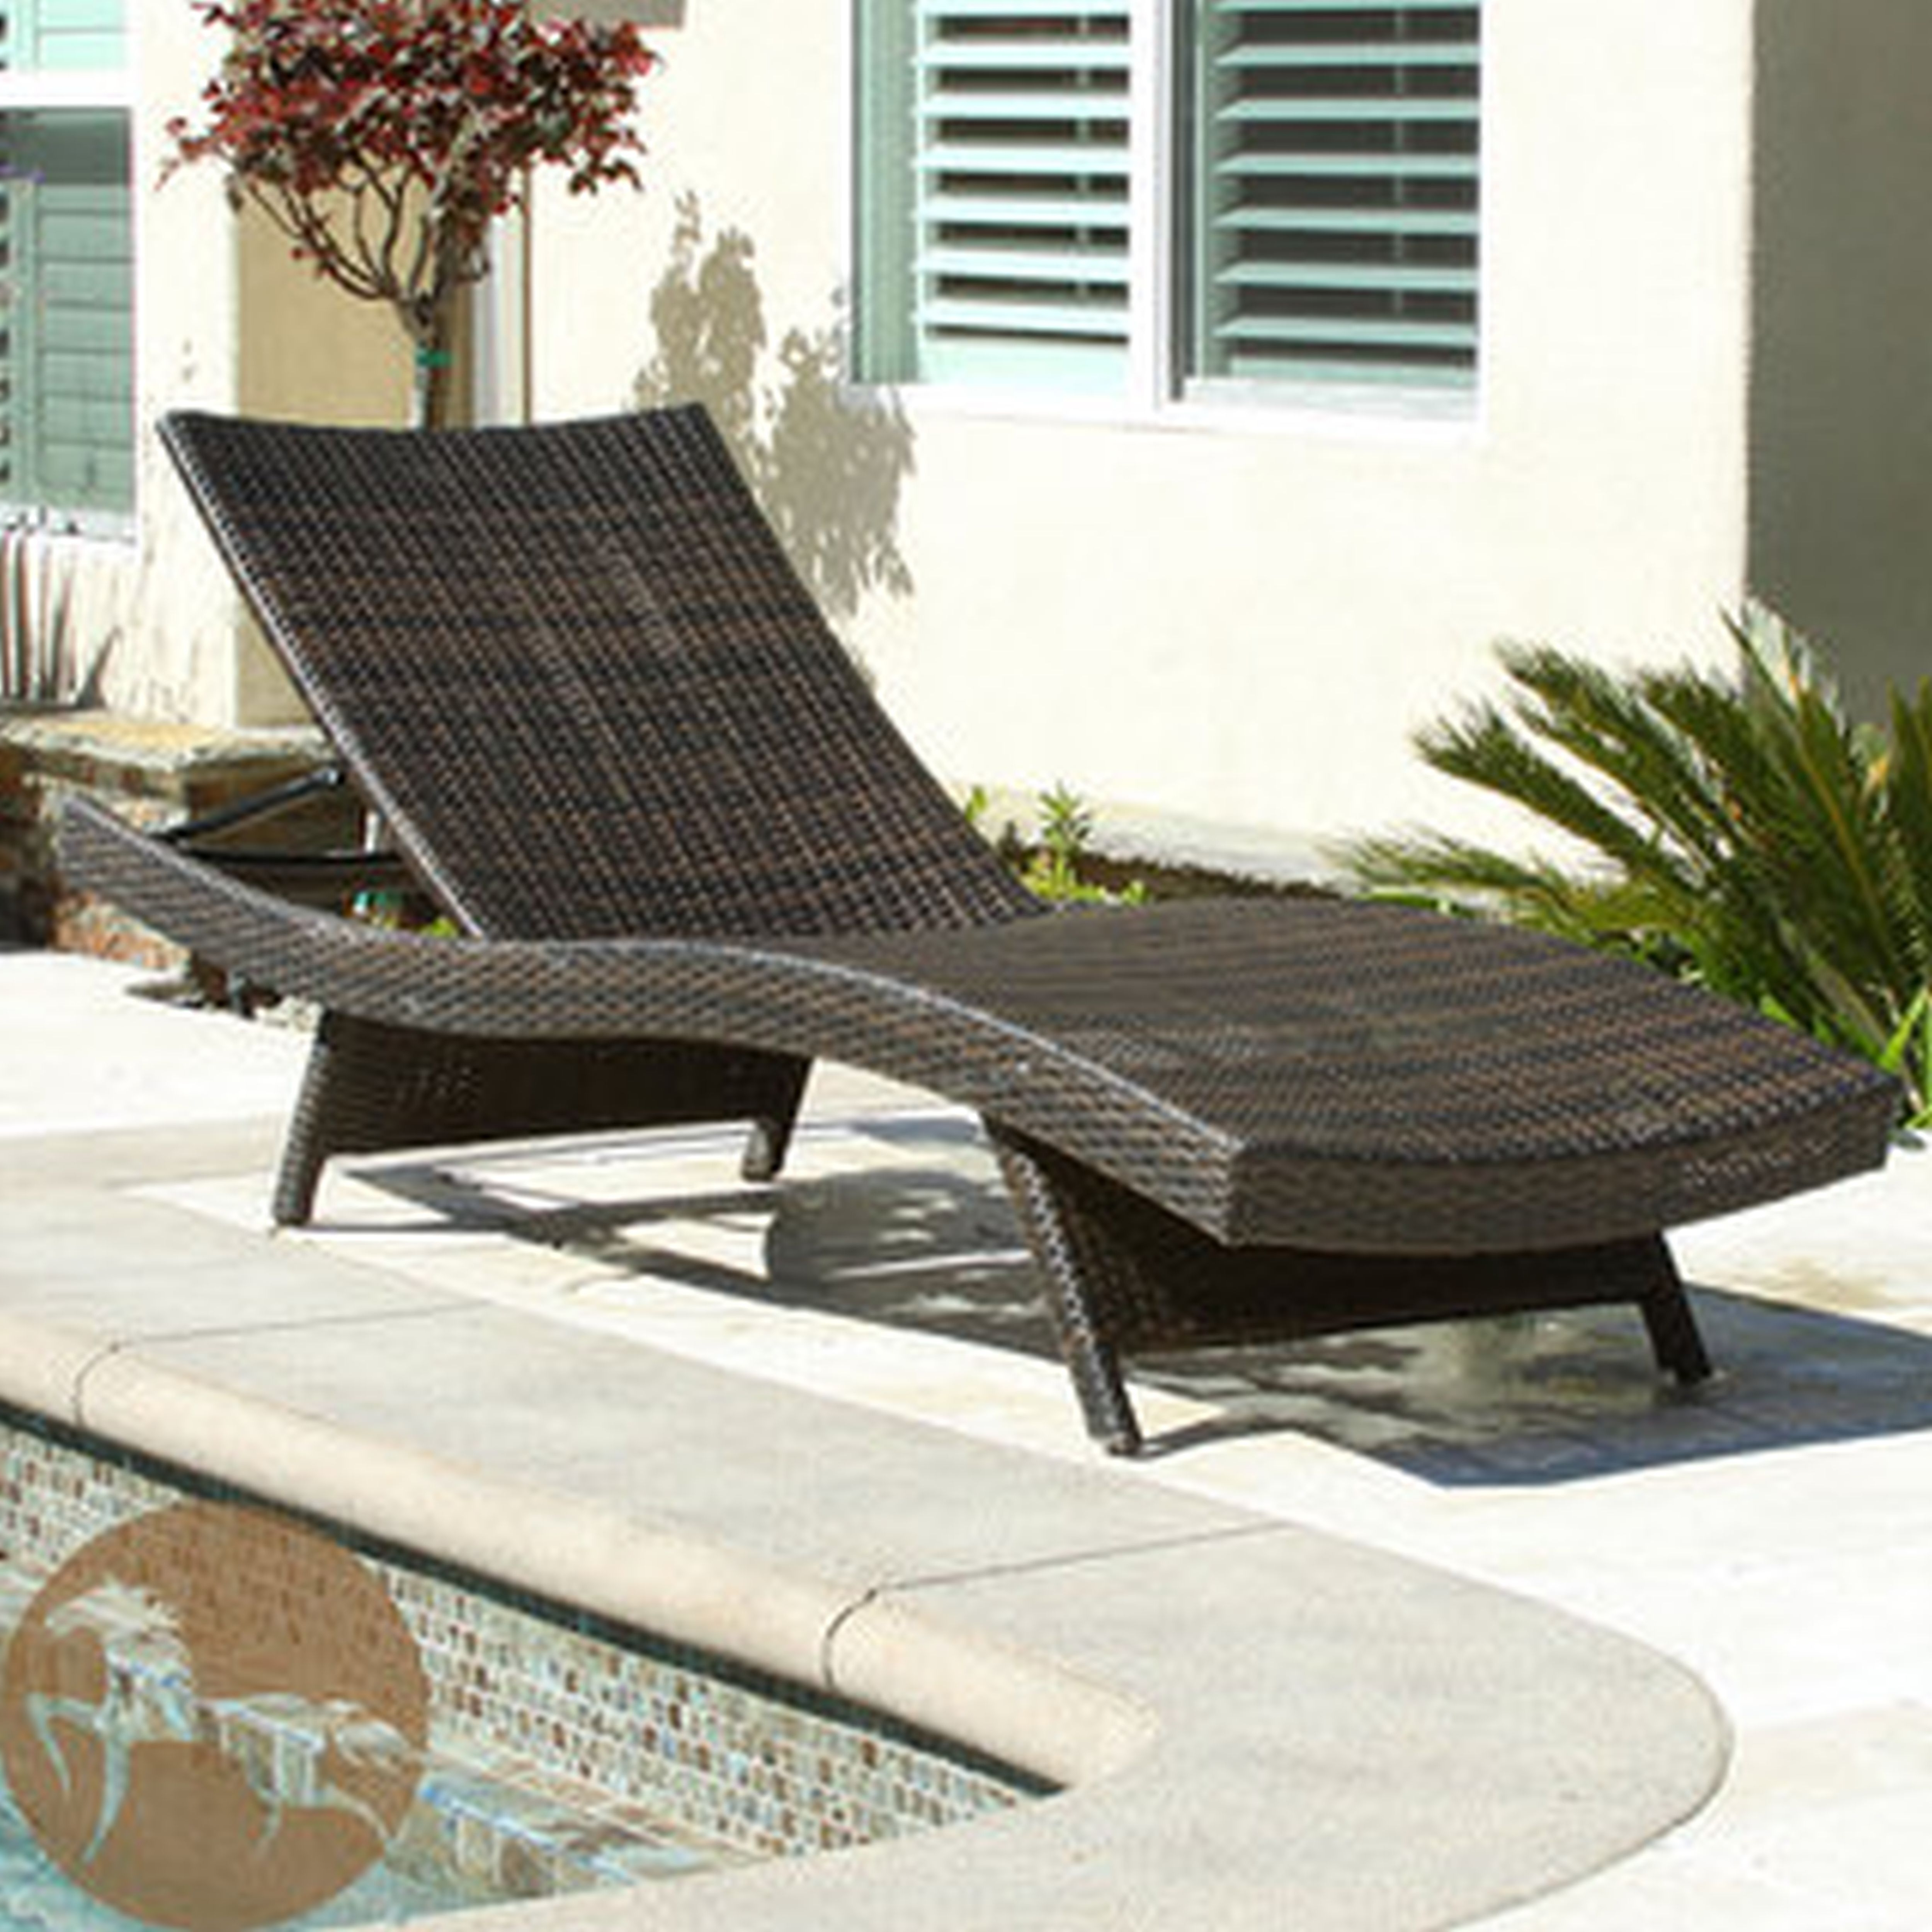 Most Recently Released Deck Chaise Lounge Chairs With Regard To Colorful Outdoor Chaise Lounge Chairs • Lounge Chairs Ideas (View 11 of 15)